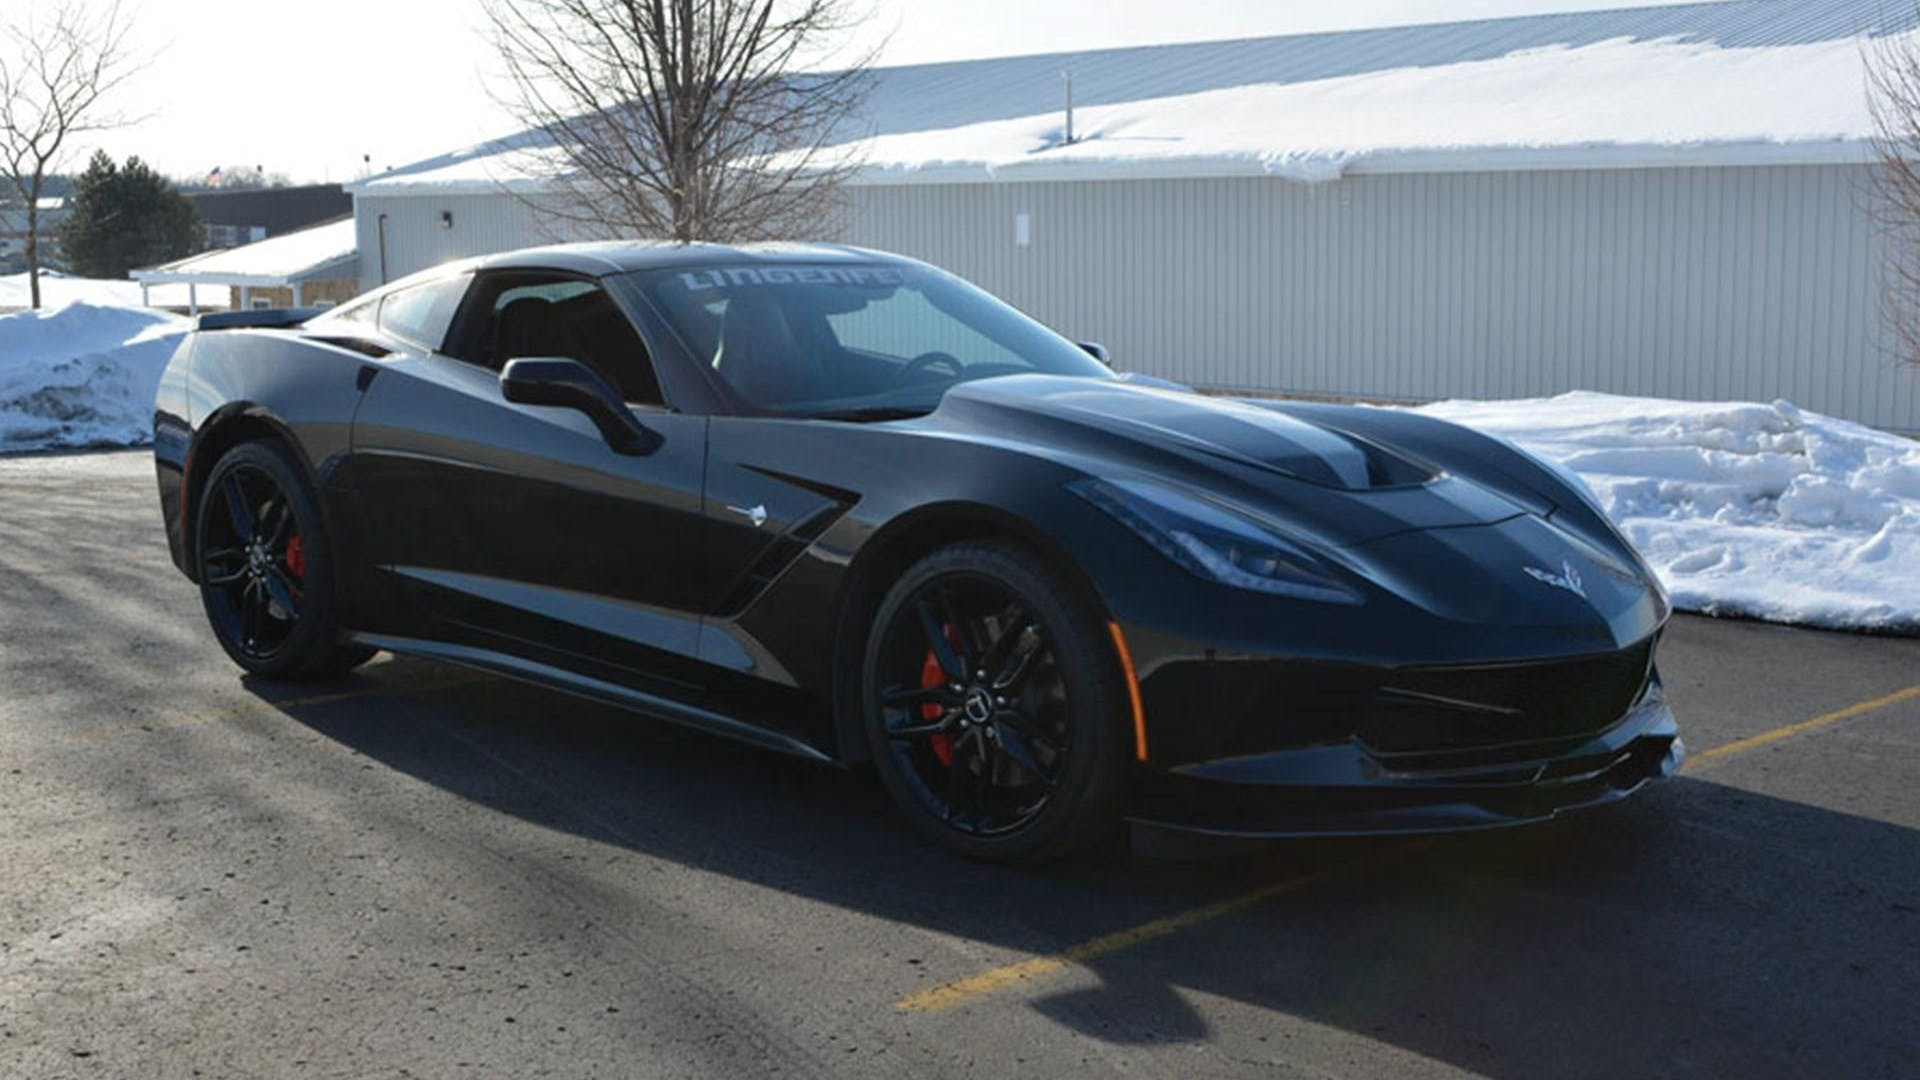 2014 Chevrolet Corvette Lingenfelter Supercharged